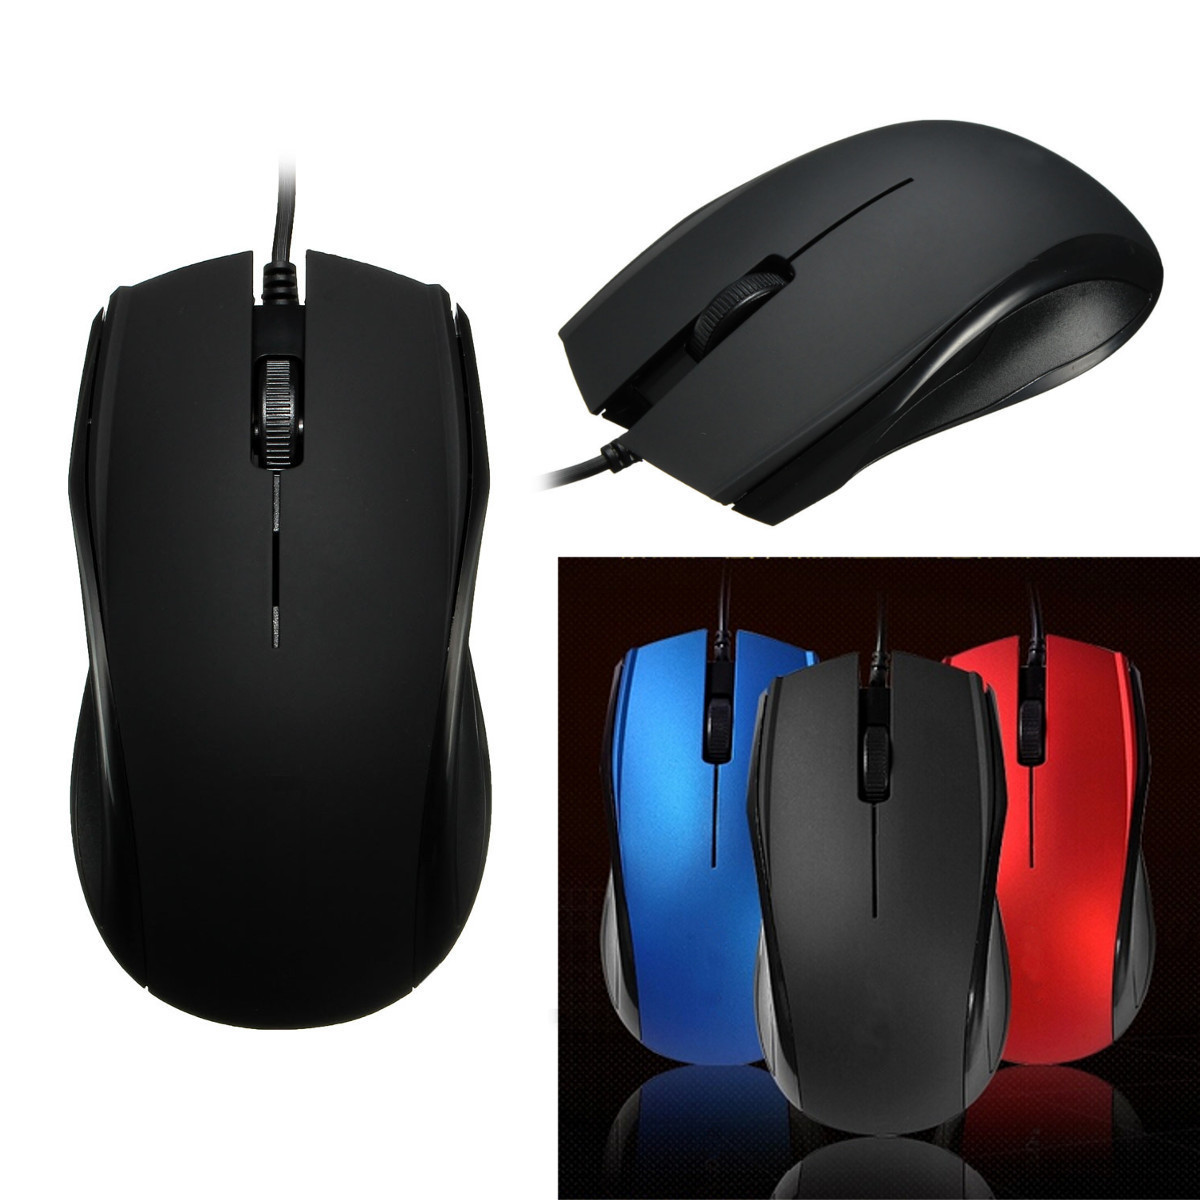 Online color wheel games - New Usb Wired Optical Gaming Game Mouse Mice Scroll Wheel 3 Buttons For Computer For Macbook